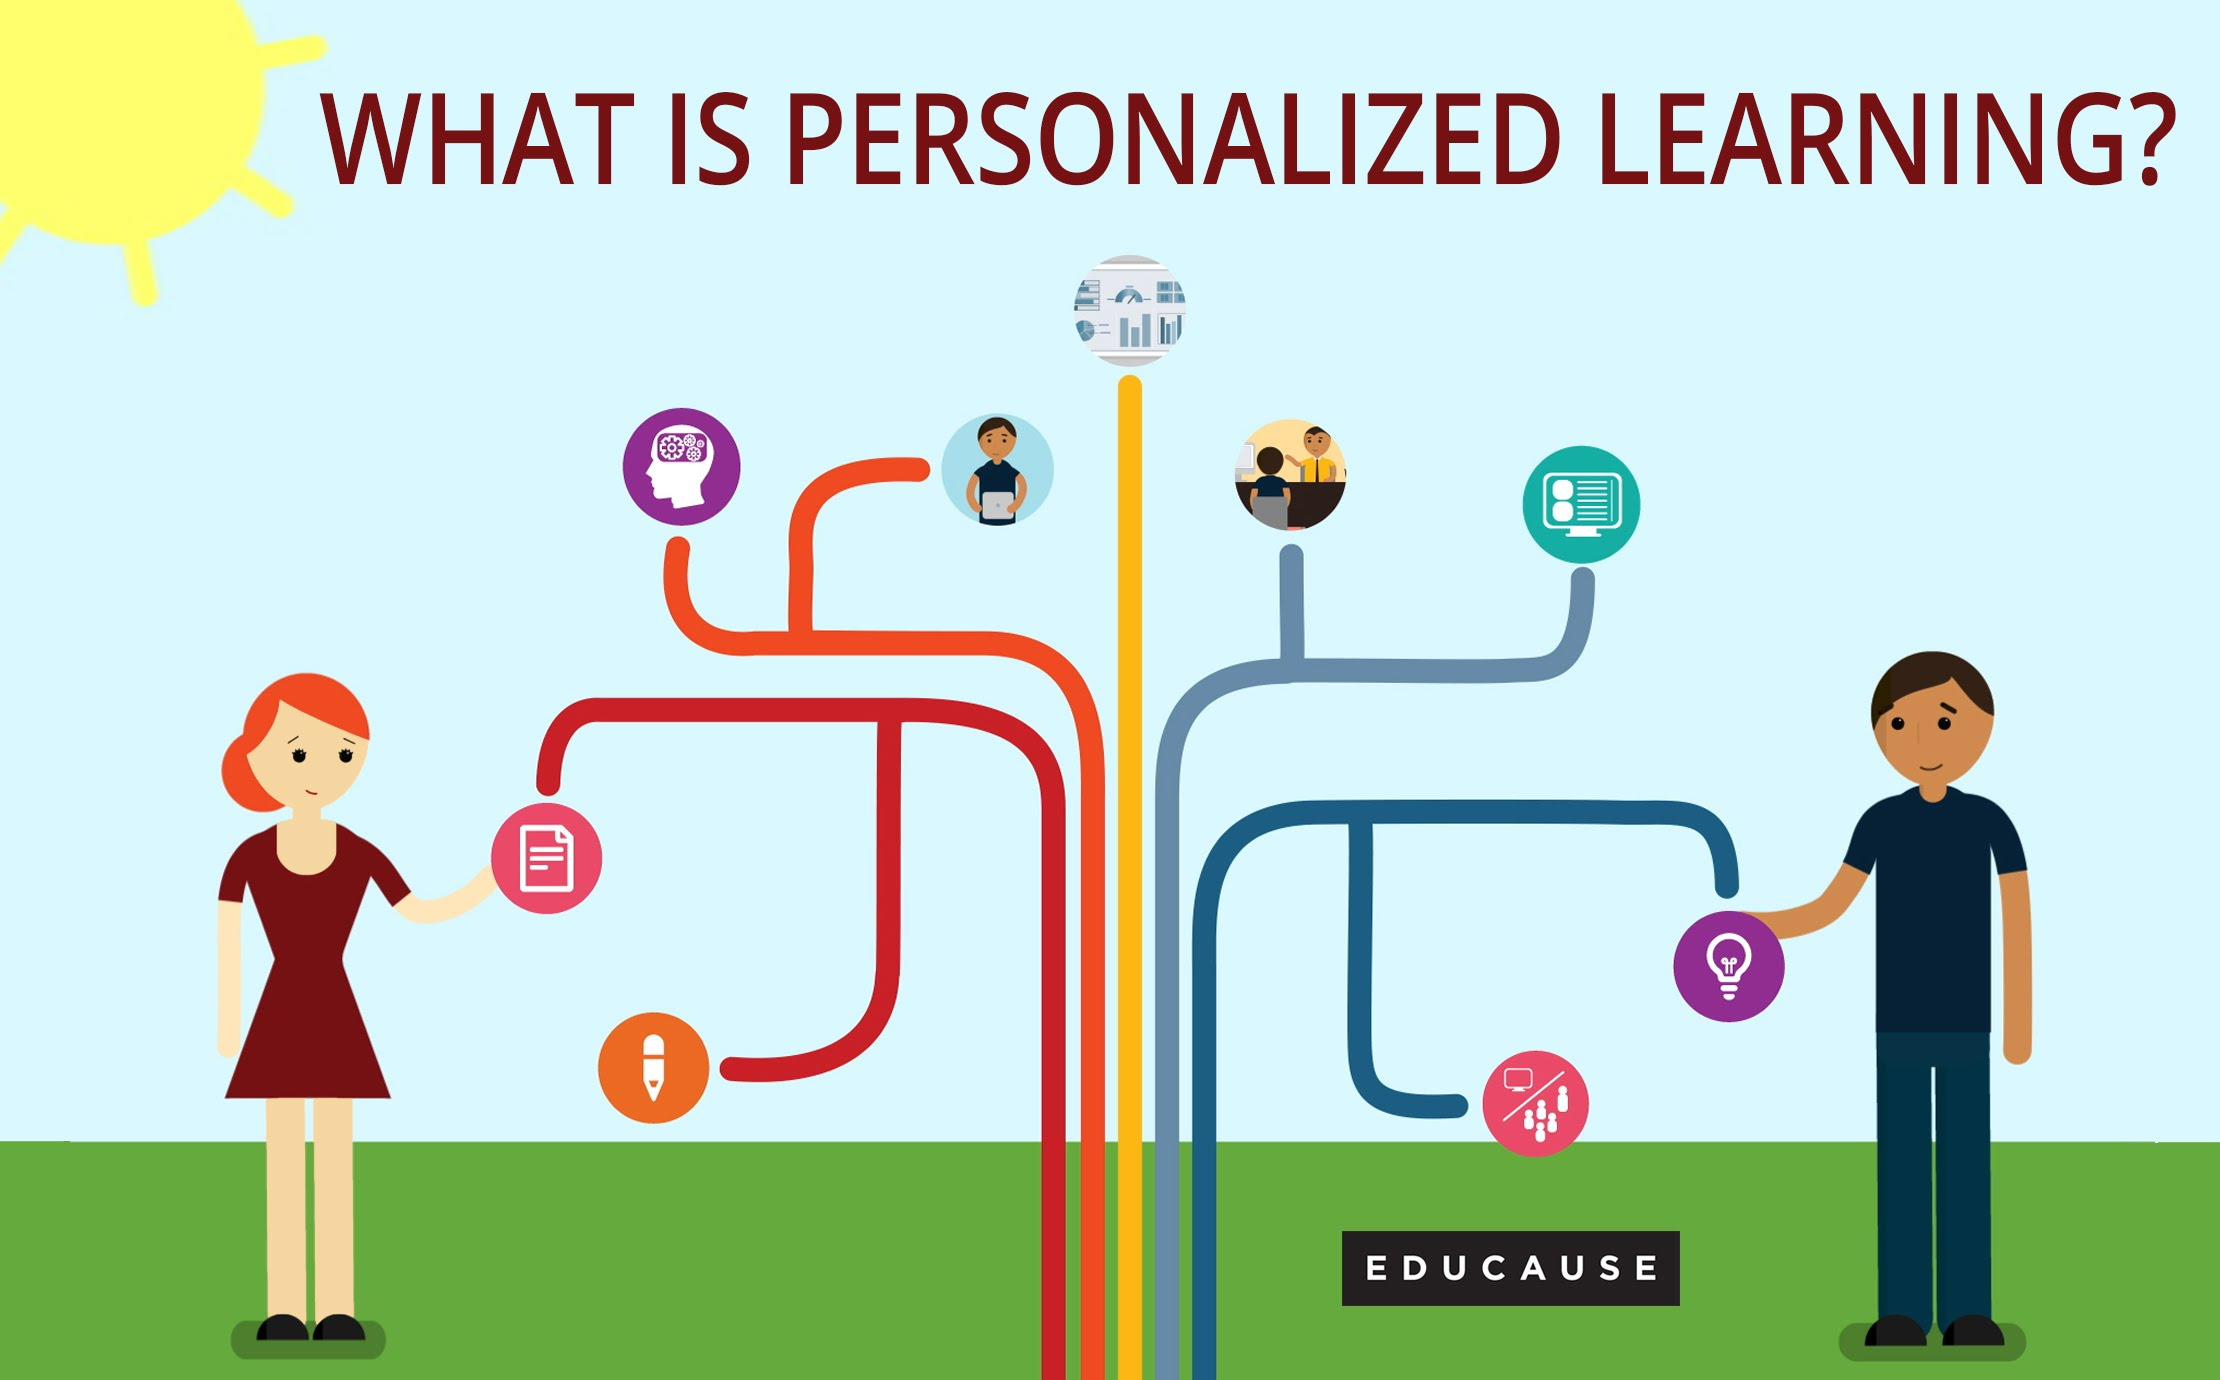 Persoanlized learning